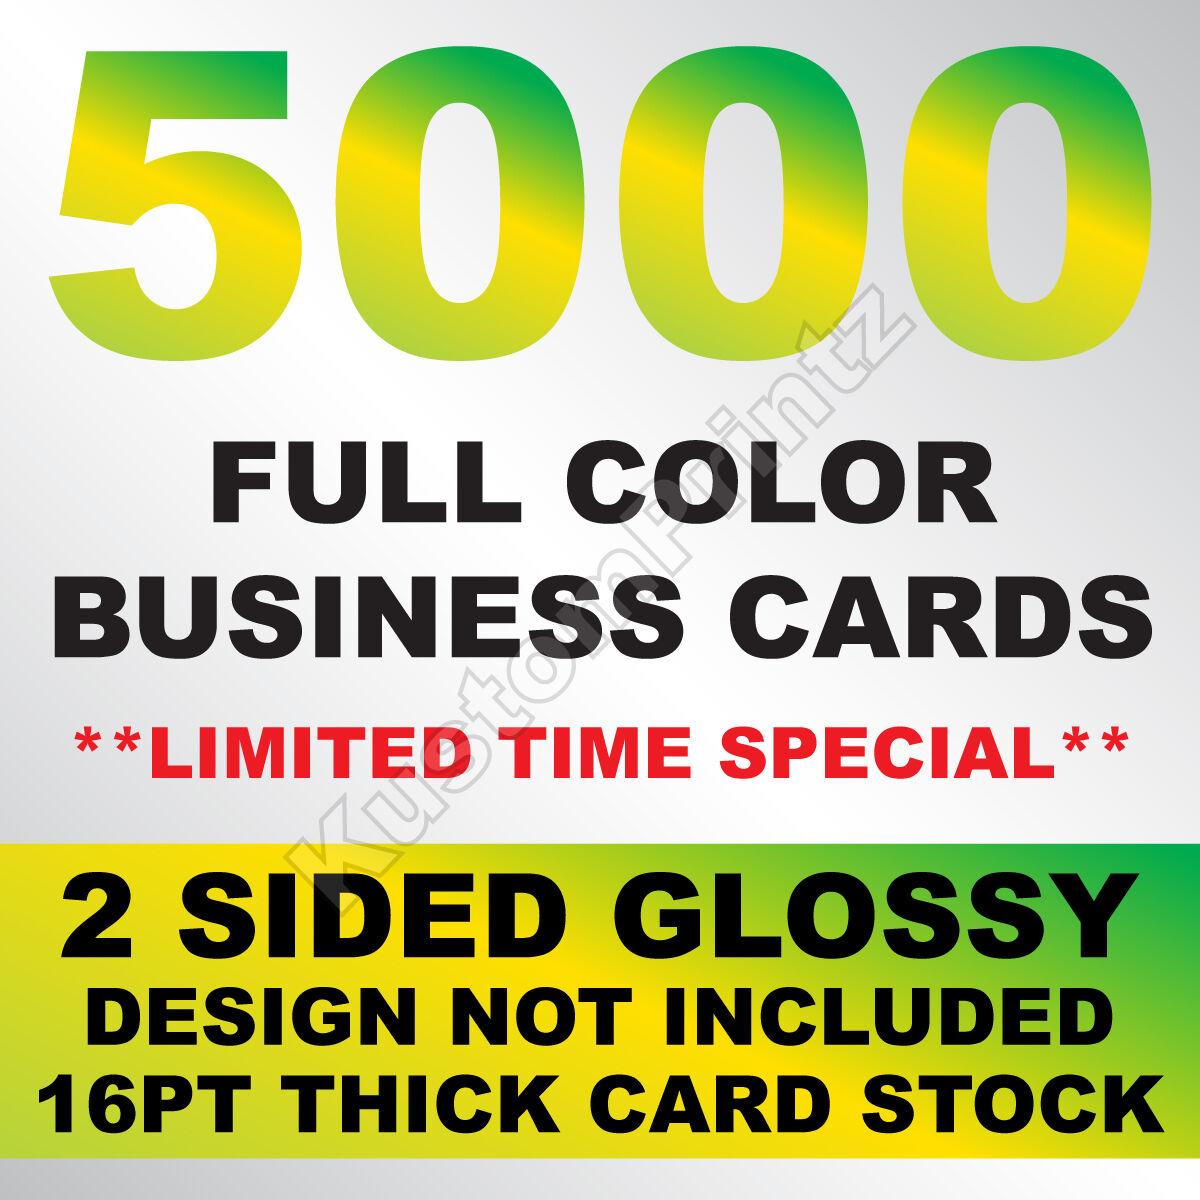 5000 full color business cards w your artwork ready to print 2 sided glossy 1 of 6free shipping 5000 full color business cards - 5000 Business Cards